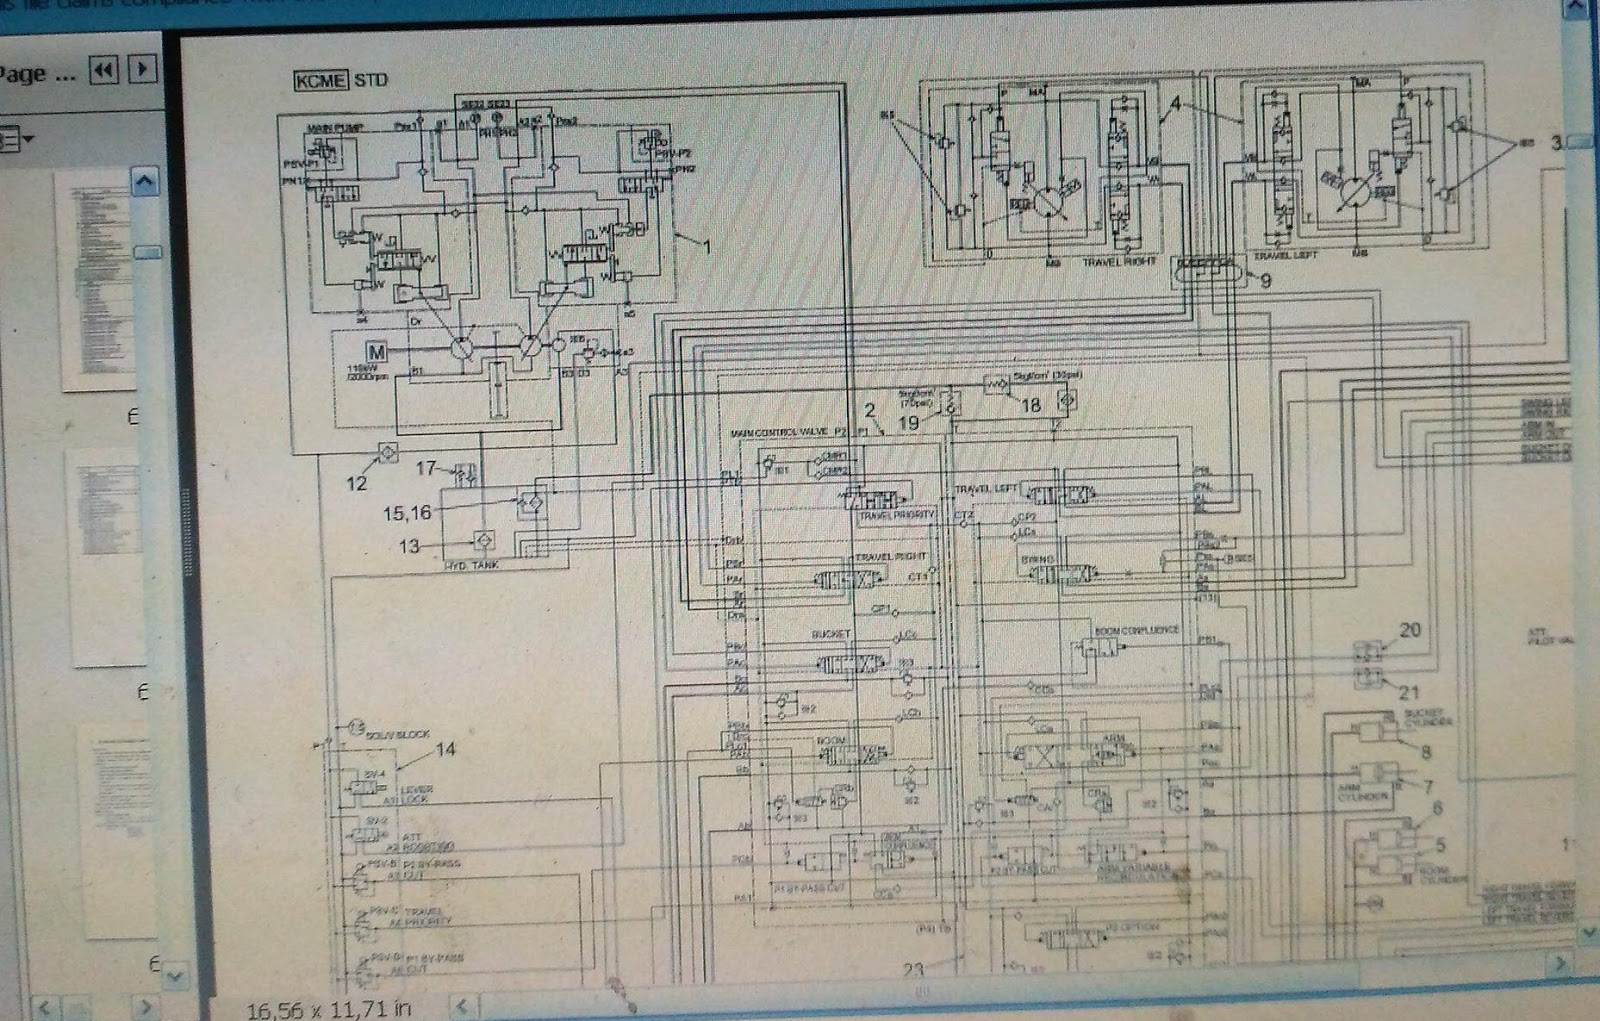 Wiring Diagram Kobelco Sk200 Electrical Diagrams Sk210 6e Sk200lc Shop Manual Berita Book Sk140 Specs